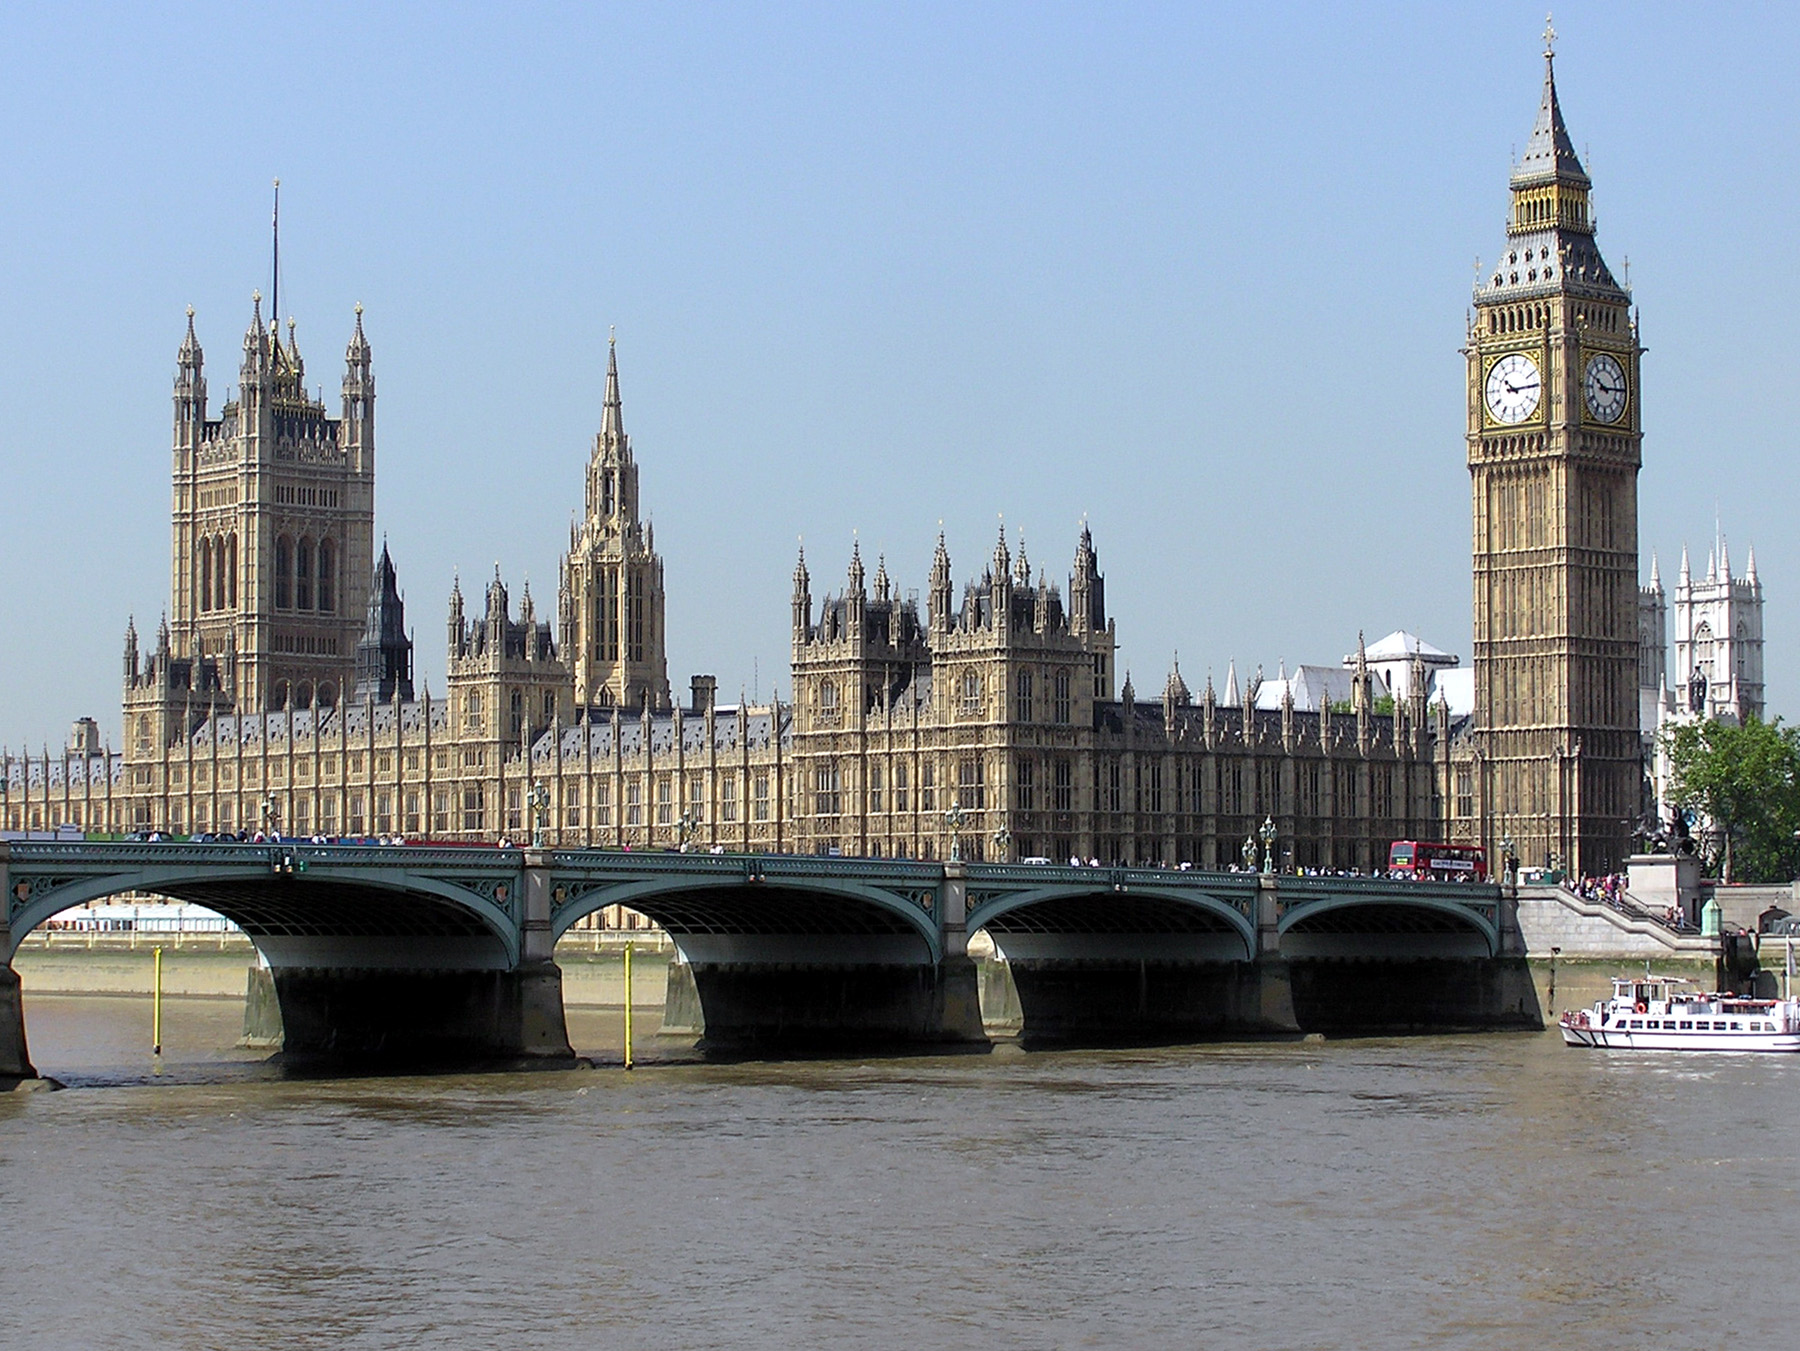 The building of the British Parliament (Palace of Westminster).